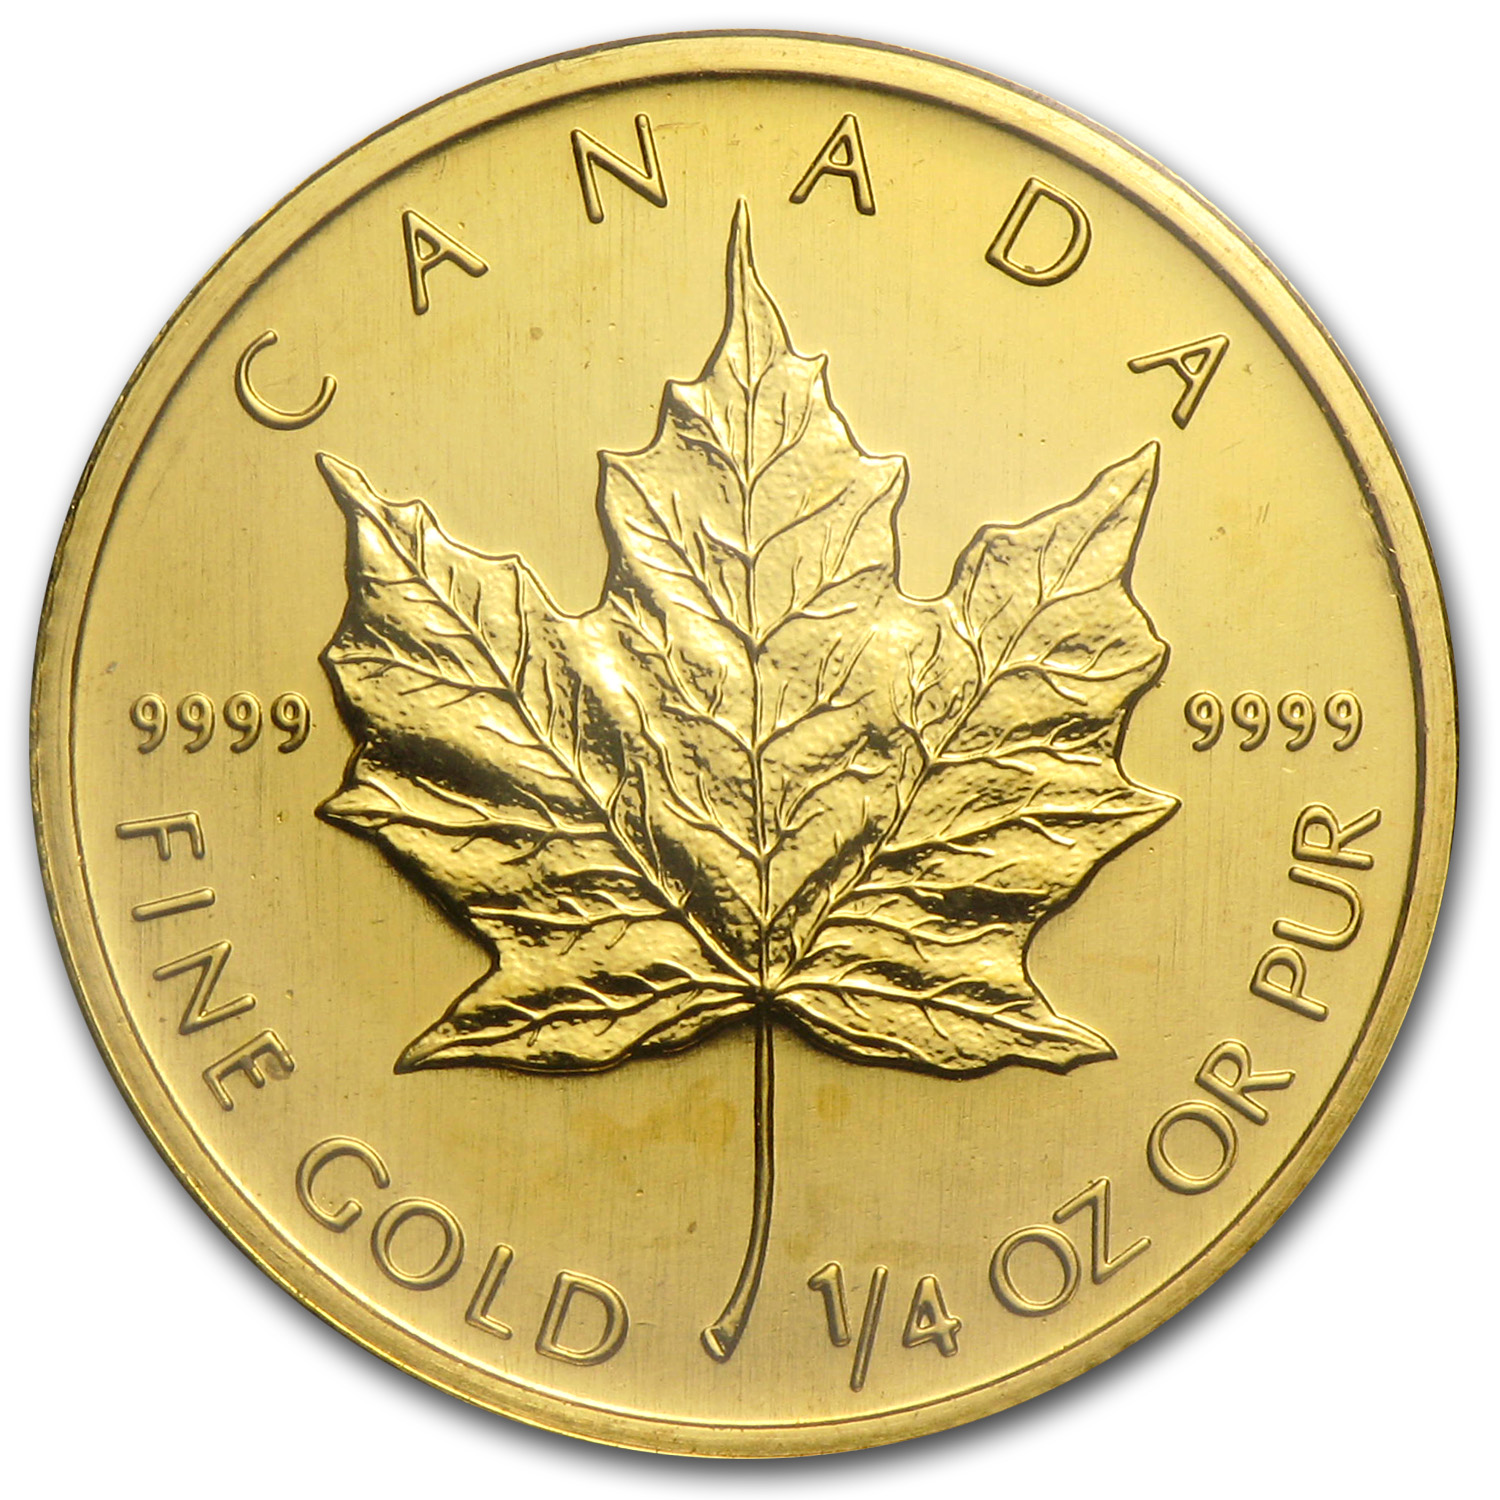 2003 Canada 1/4 oz Gold Maple Leaf BU